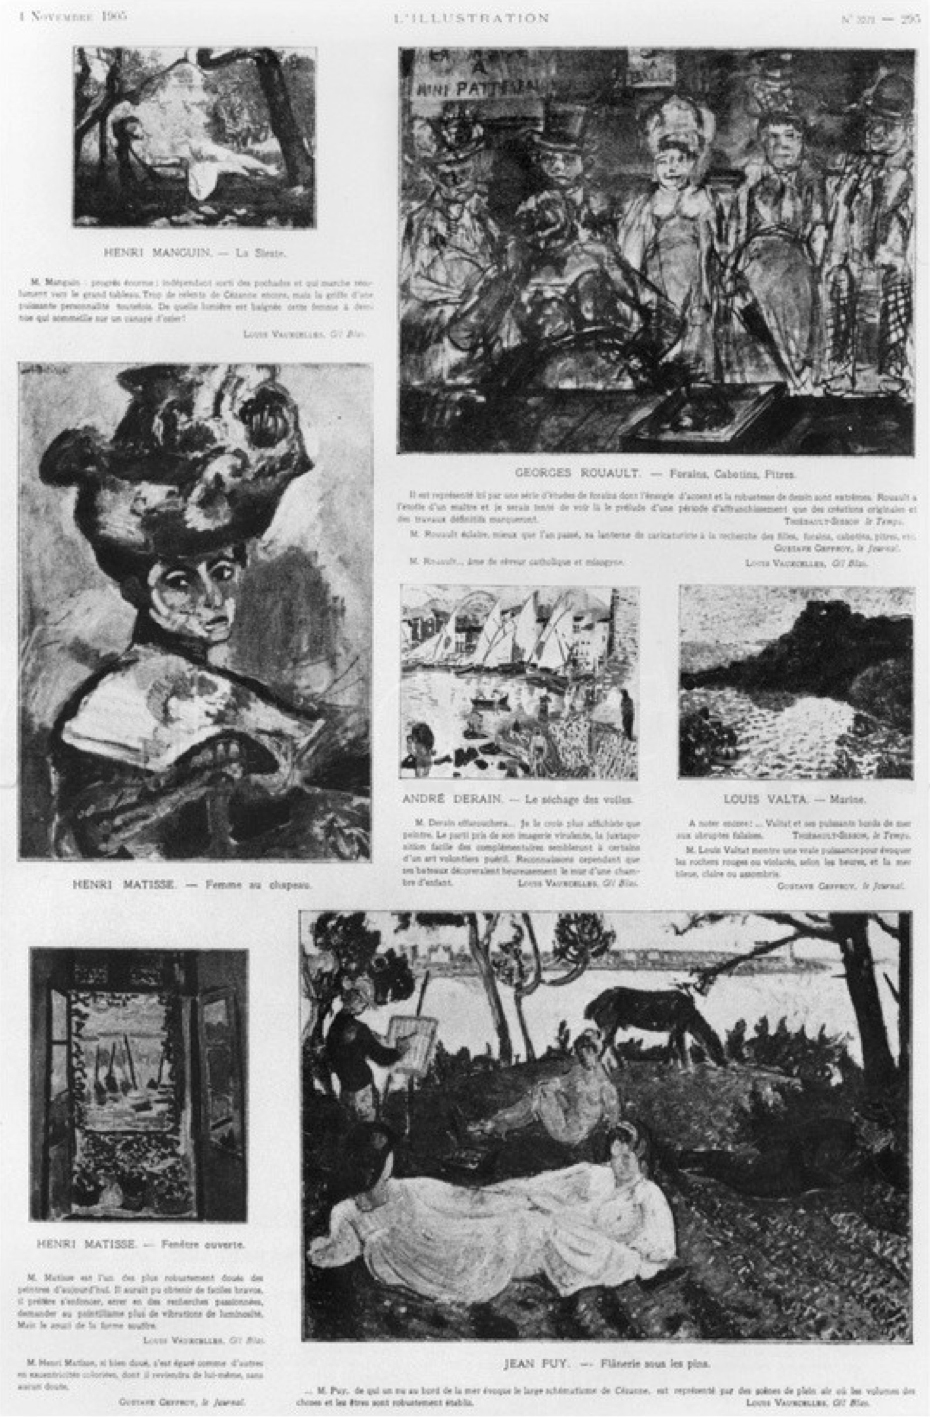 Les_Fauves,_Exhibition_at_the_Salon_D'Automne,_from_L'Illustration,_4_November_1905p.295